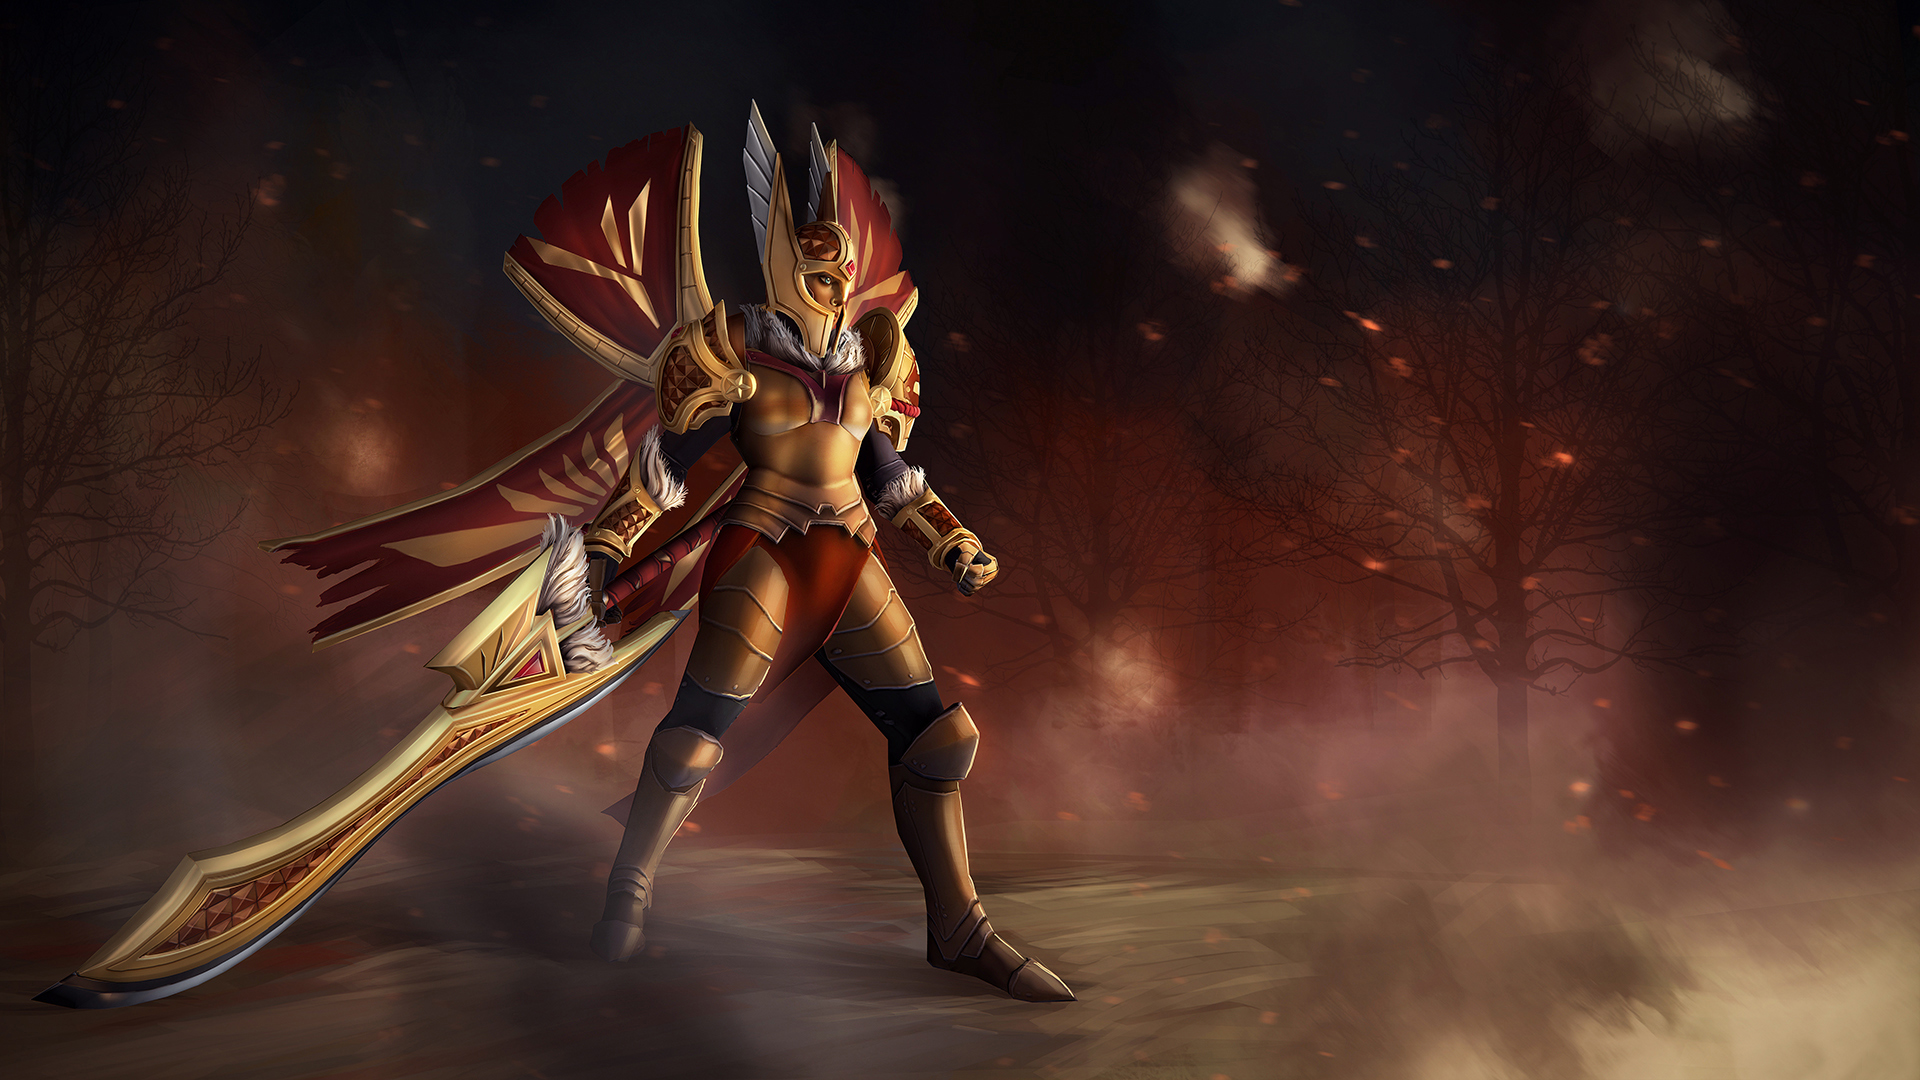 What Do You Think Asta Would Look Like? - General ...  Legion Commander Dota 1